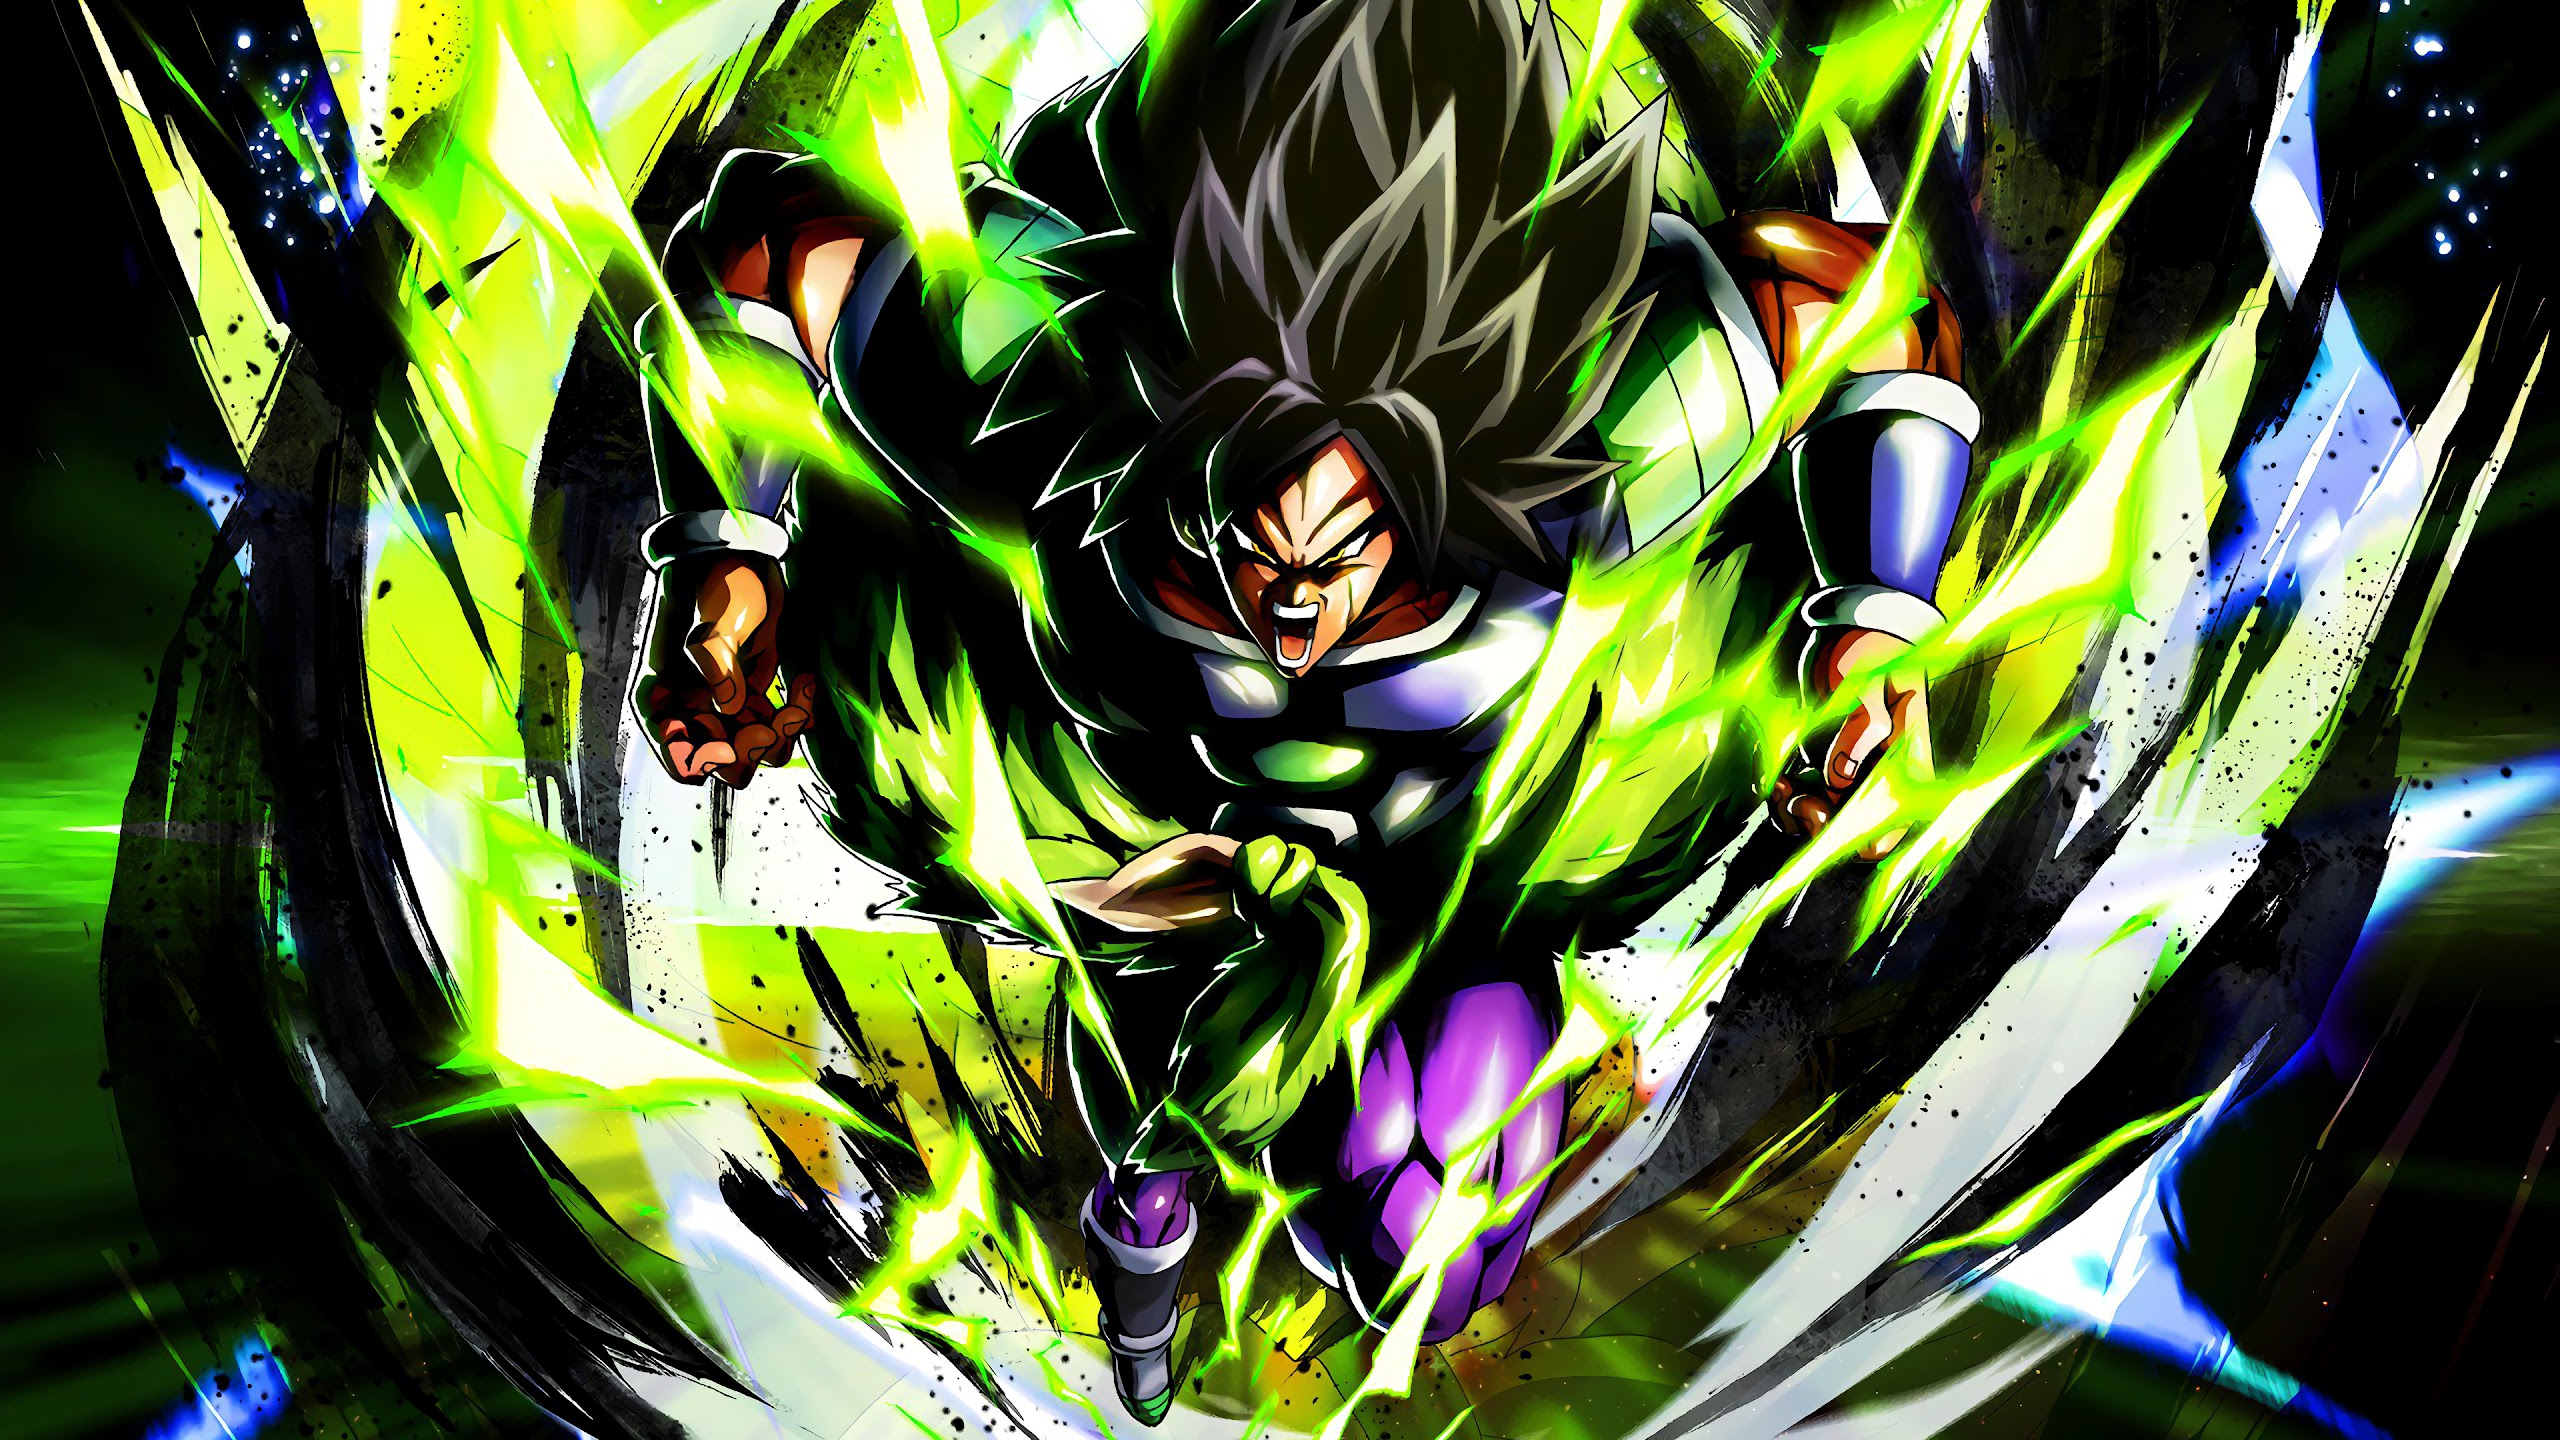 Dragon Ball Super Broly 4k 3840x2160 Wallpaper 15